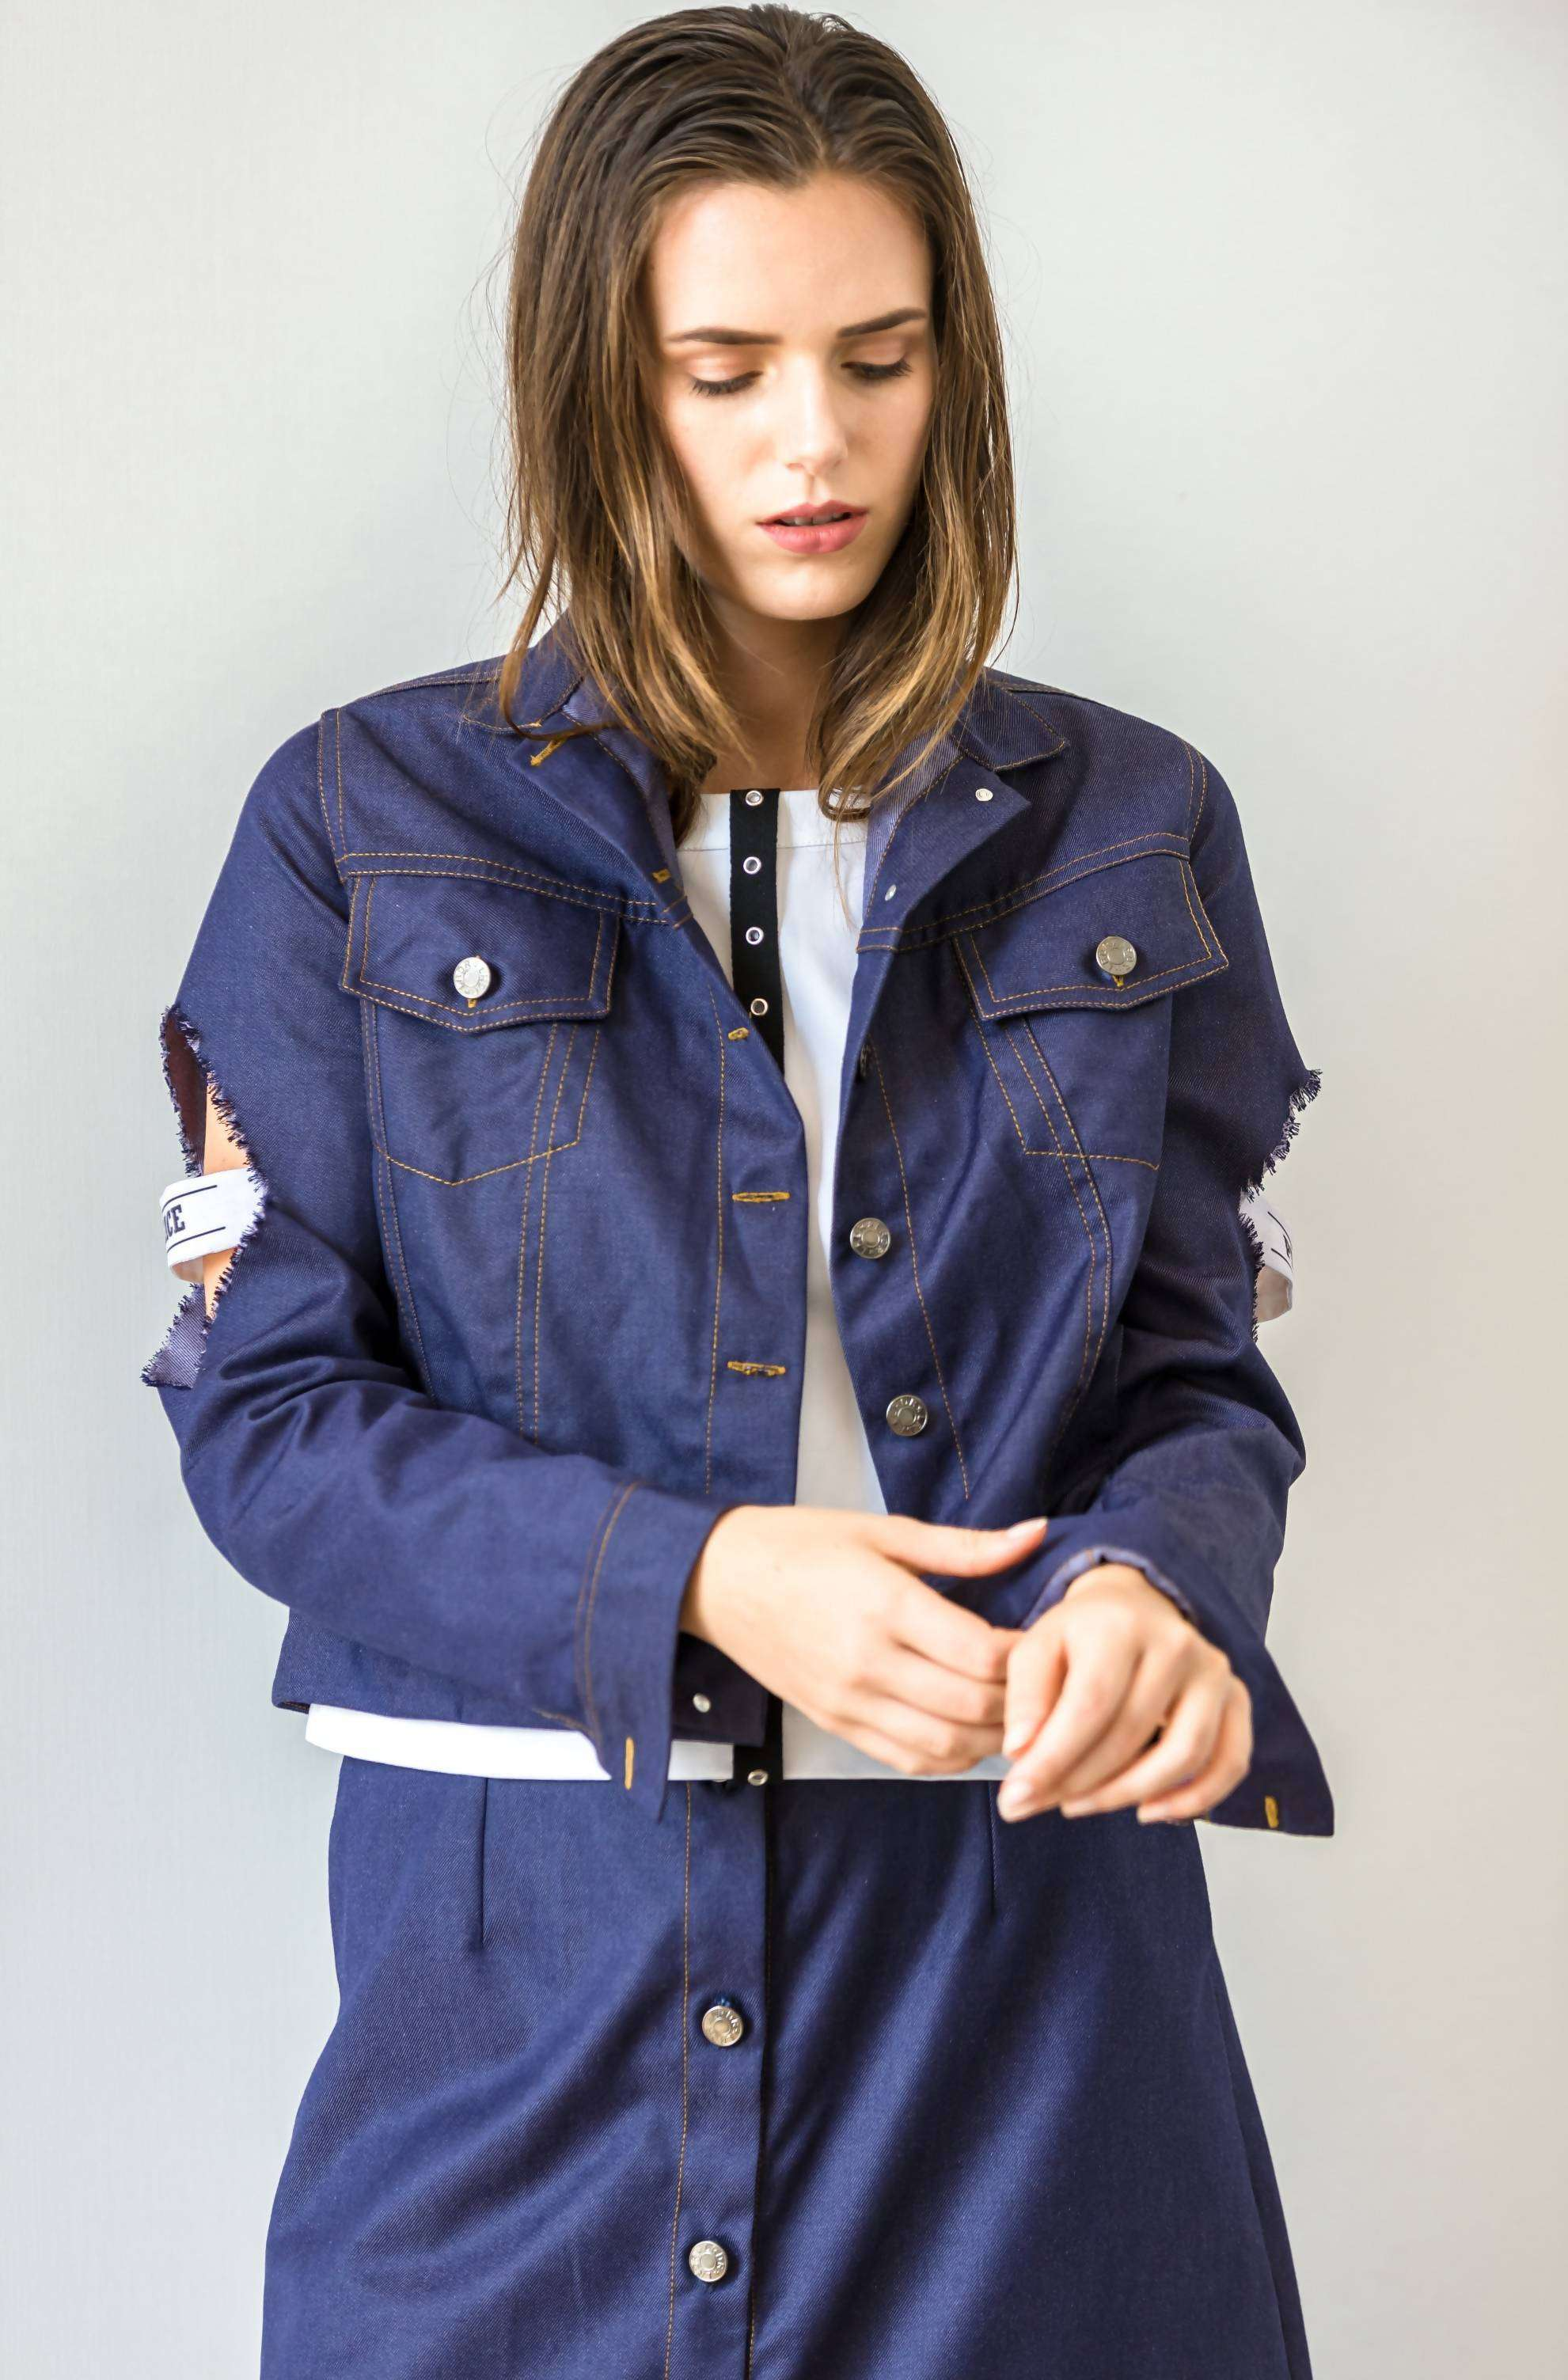 Denim Peace Jacket,ARSHYS, Curated Designer at Freesigners.com